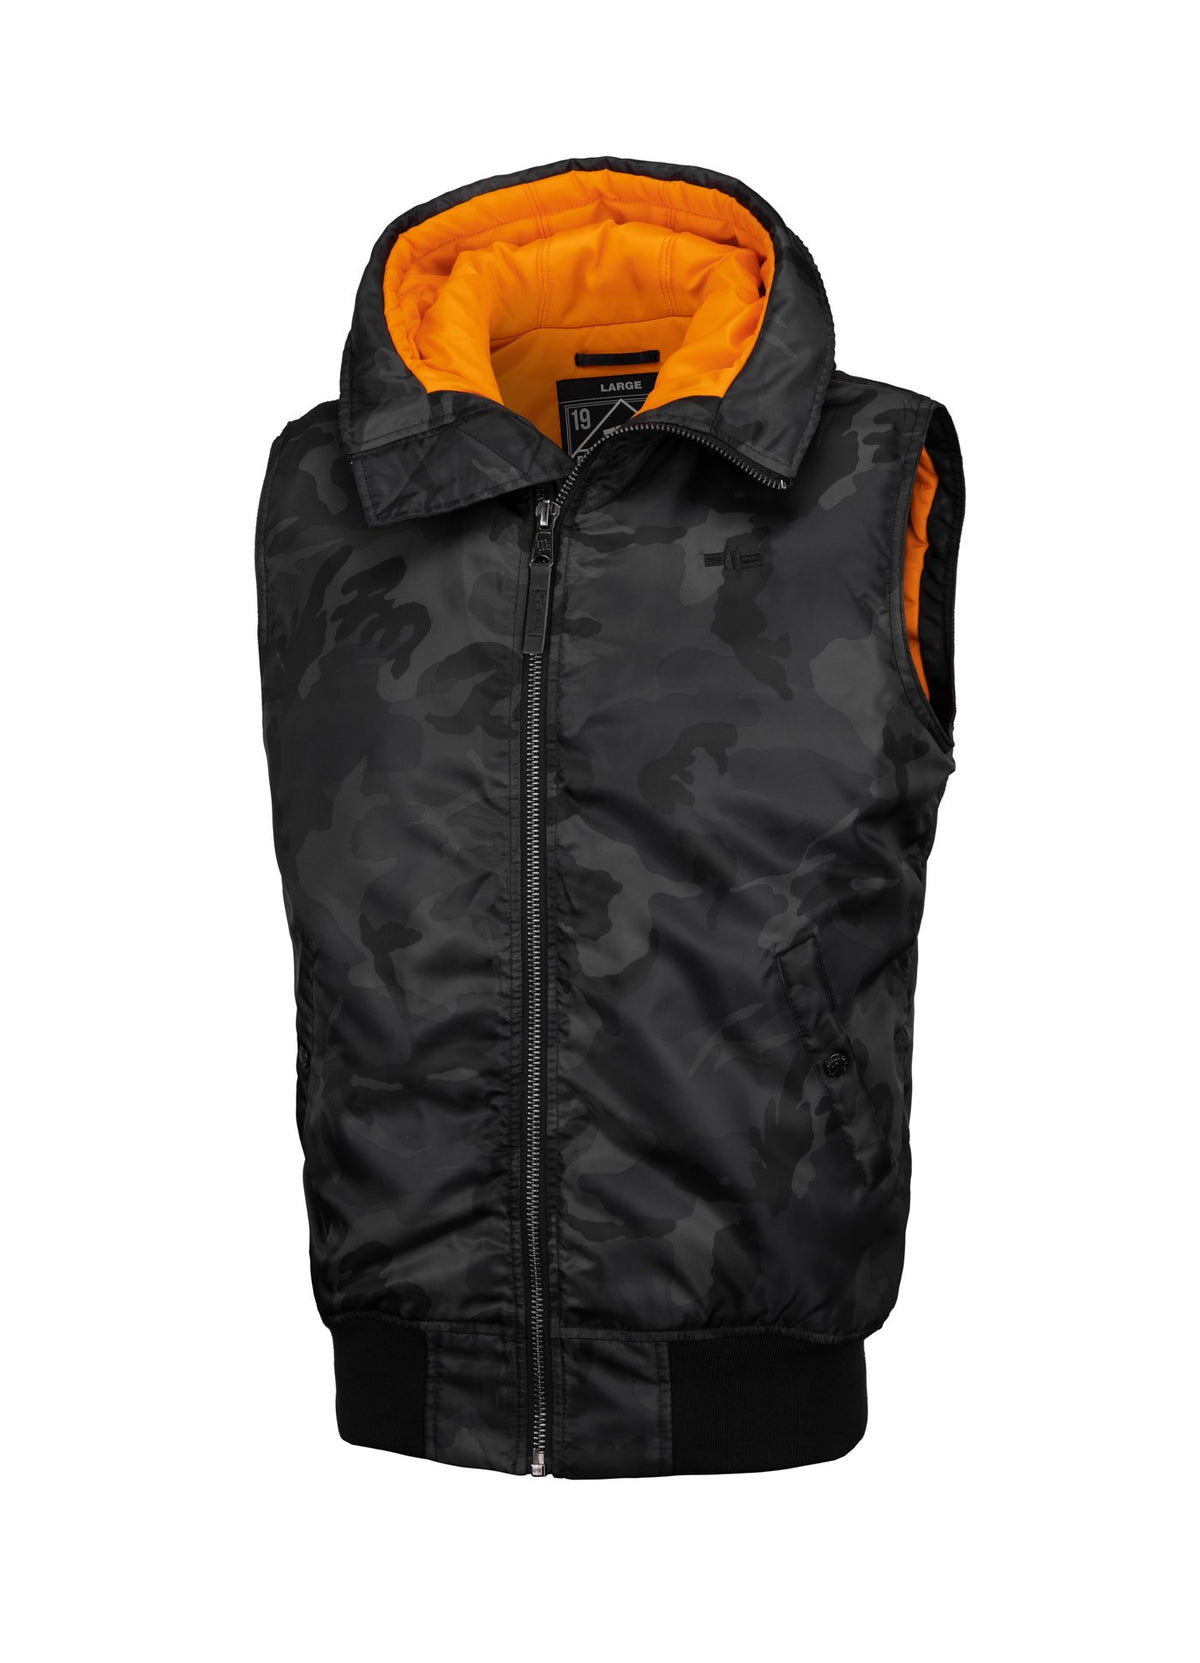 VEST ENCINO ALL BLACK CAMO - Pitbull West Coast U.S.A.